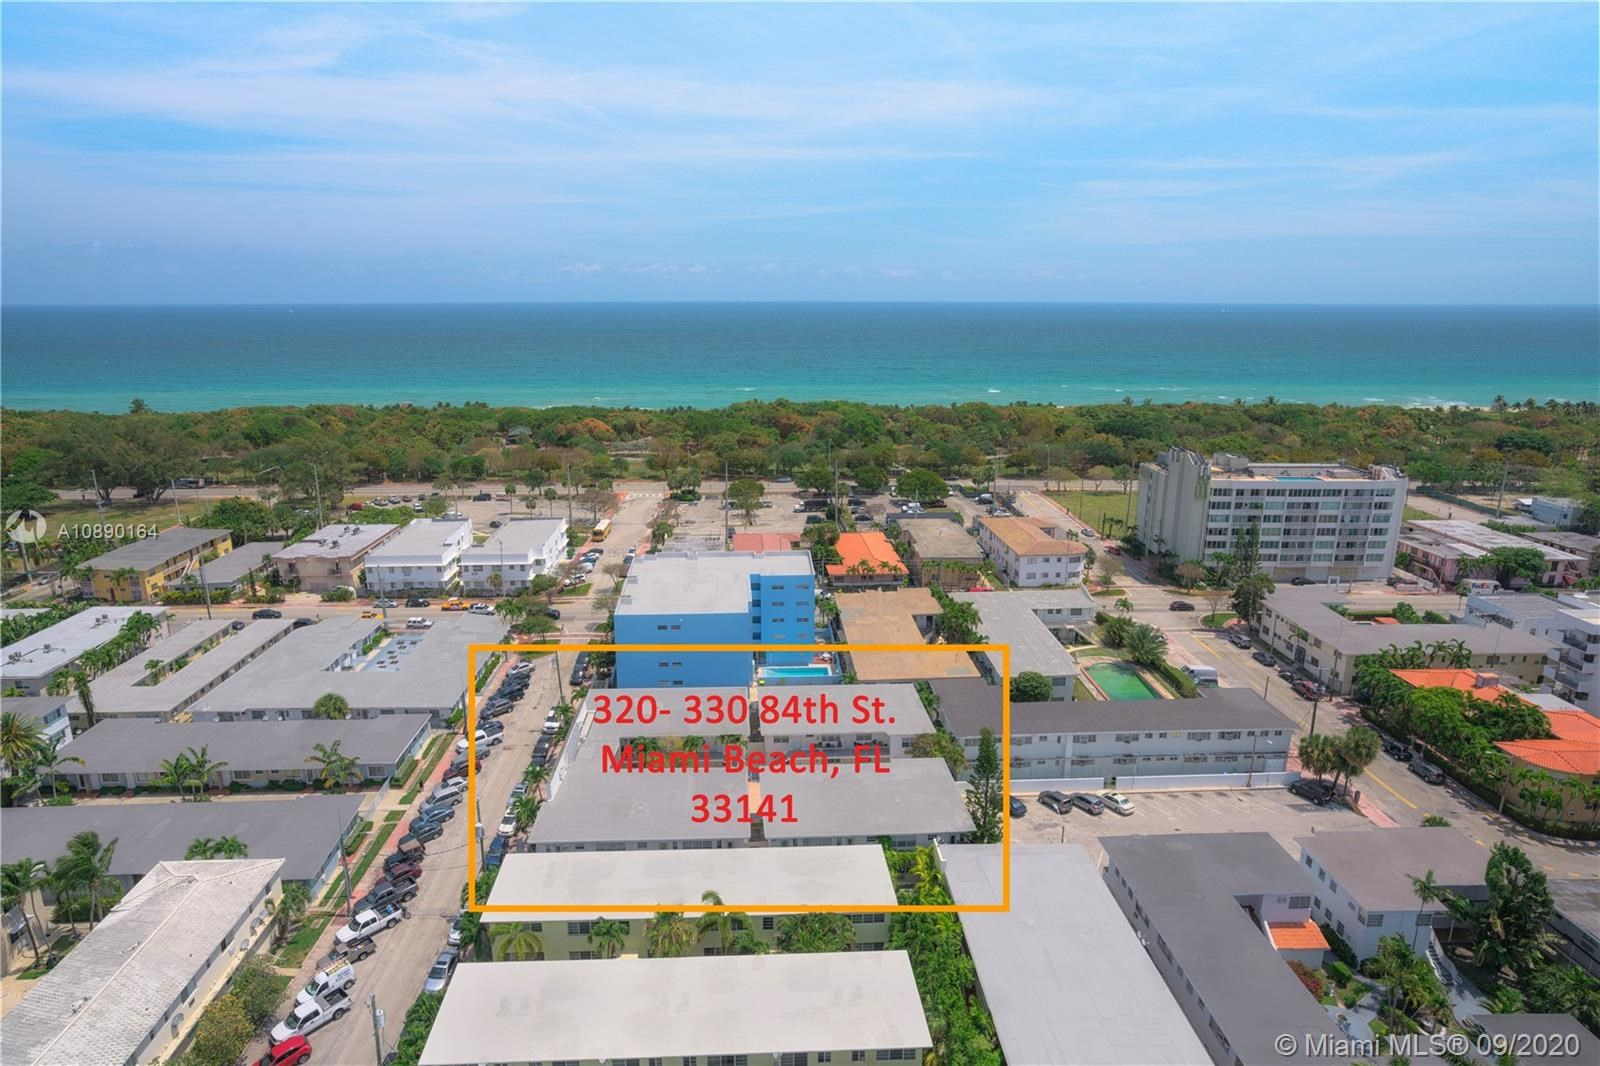 320 - 330  84th St, Miami Beach, FL 33141